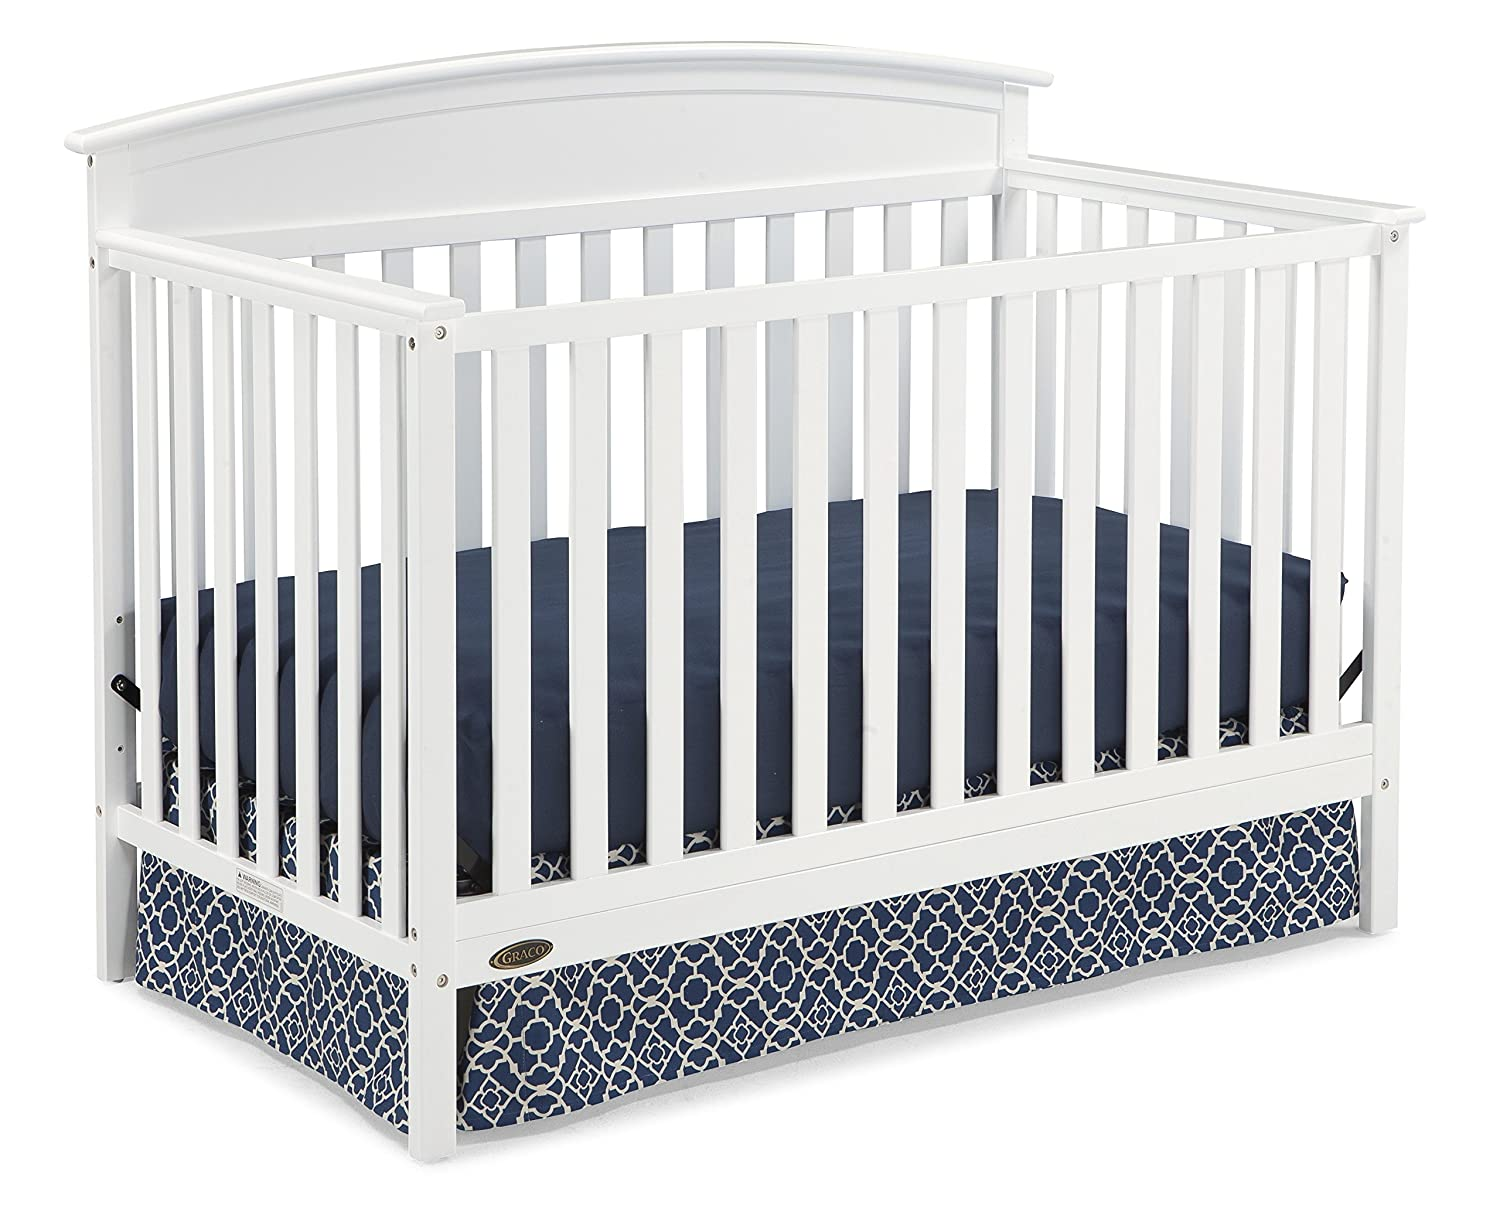 Graco Benton 5-in-1 Convertible Crib, White 04530-211